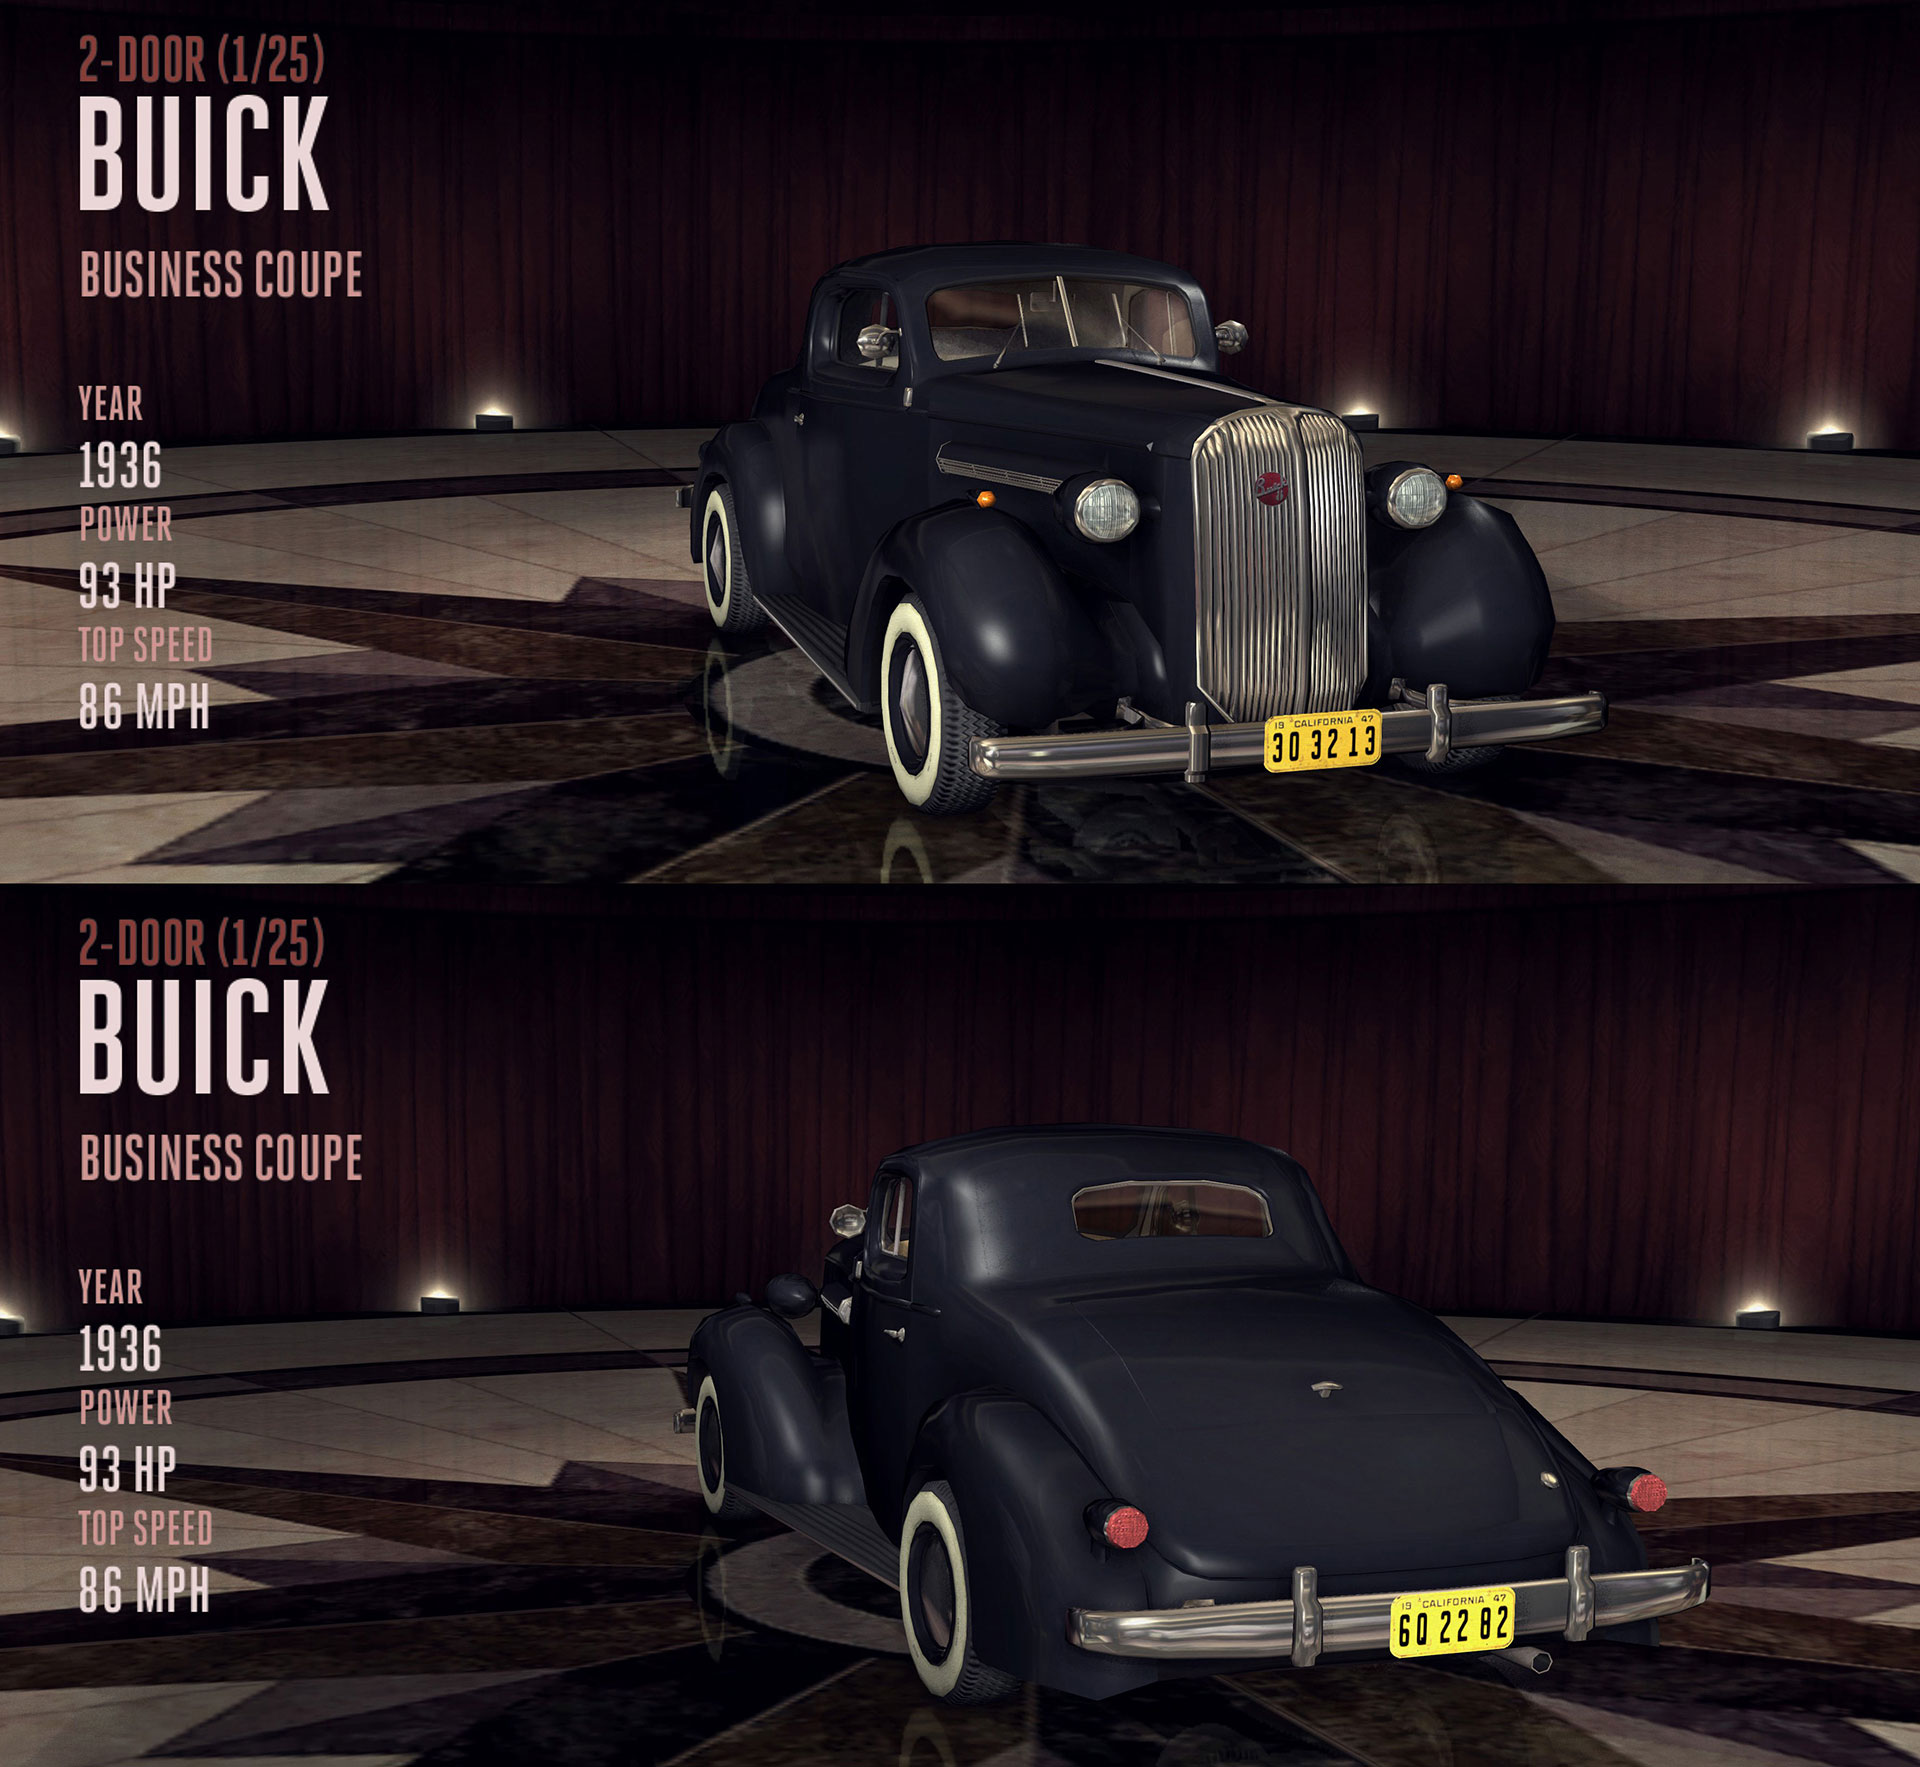 Buick Business Coupe